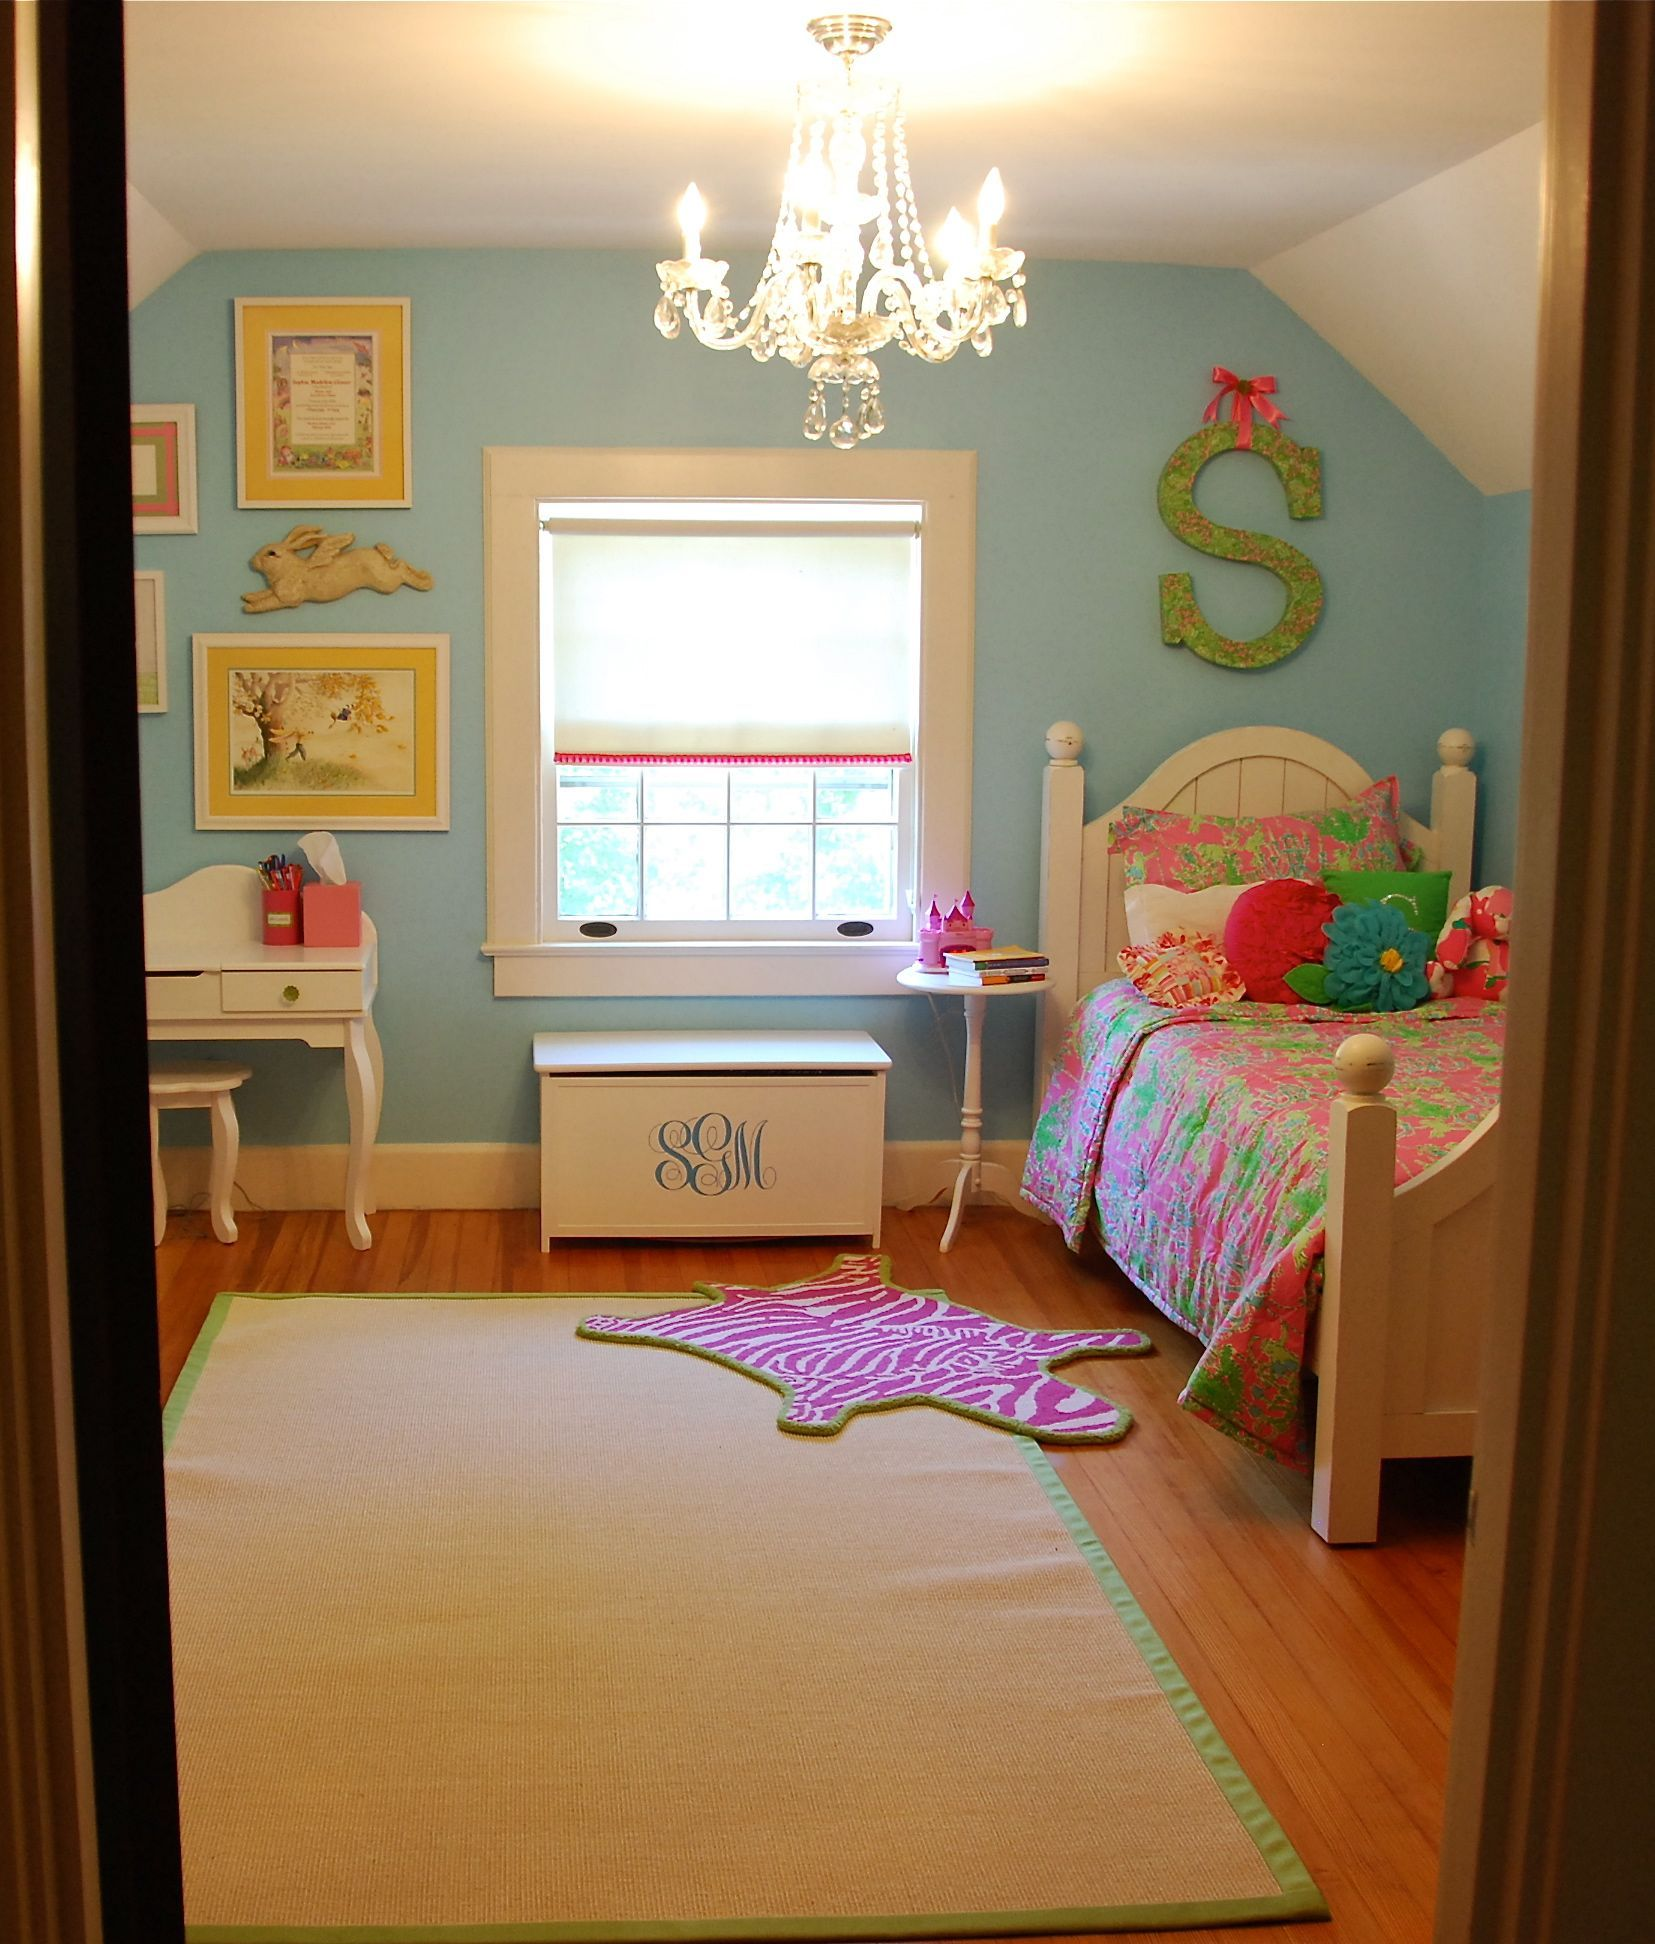 Cute Kids Room Decorating Ideas: Room Decorating Before And After Makeovers